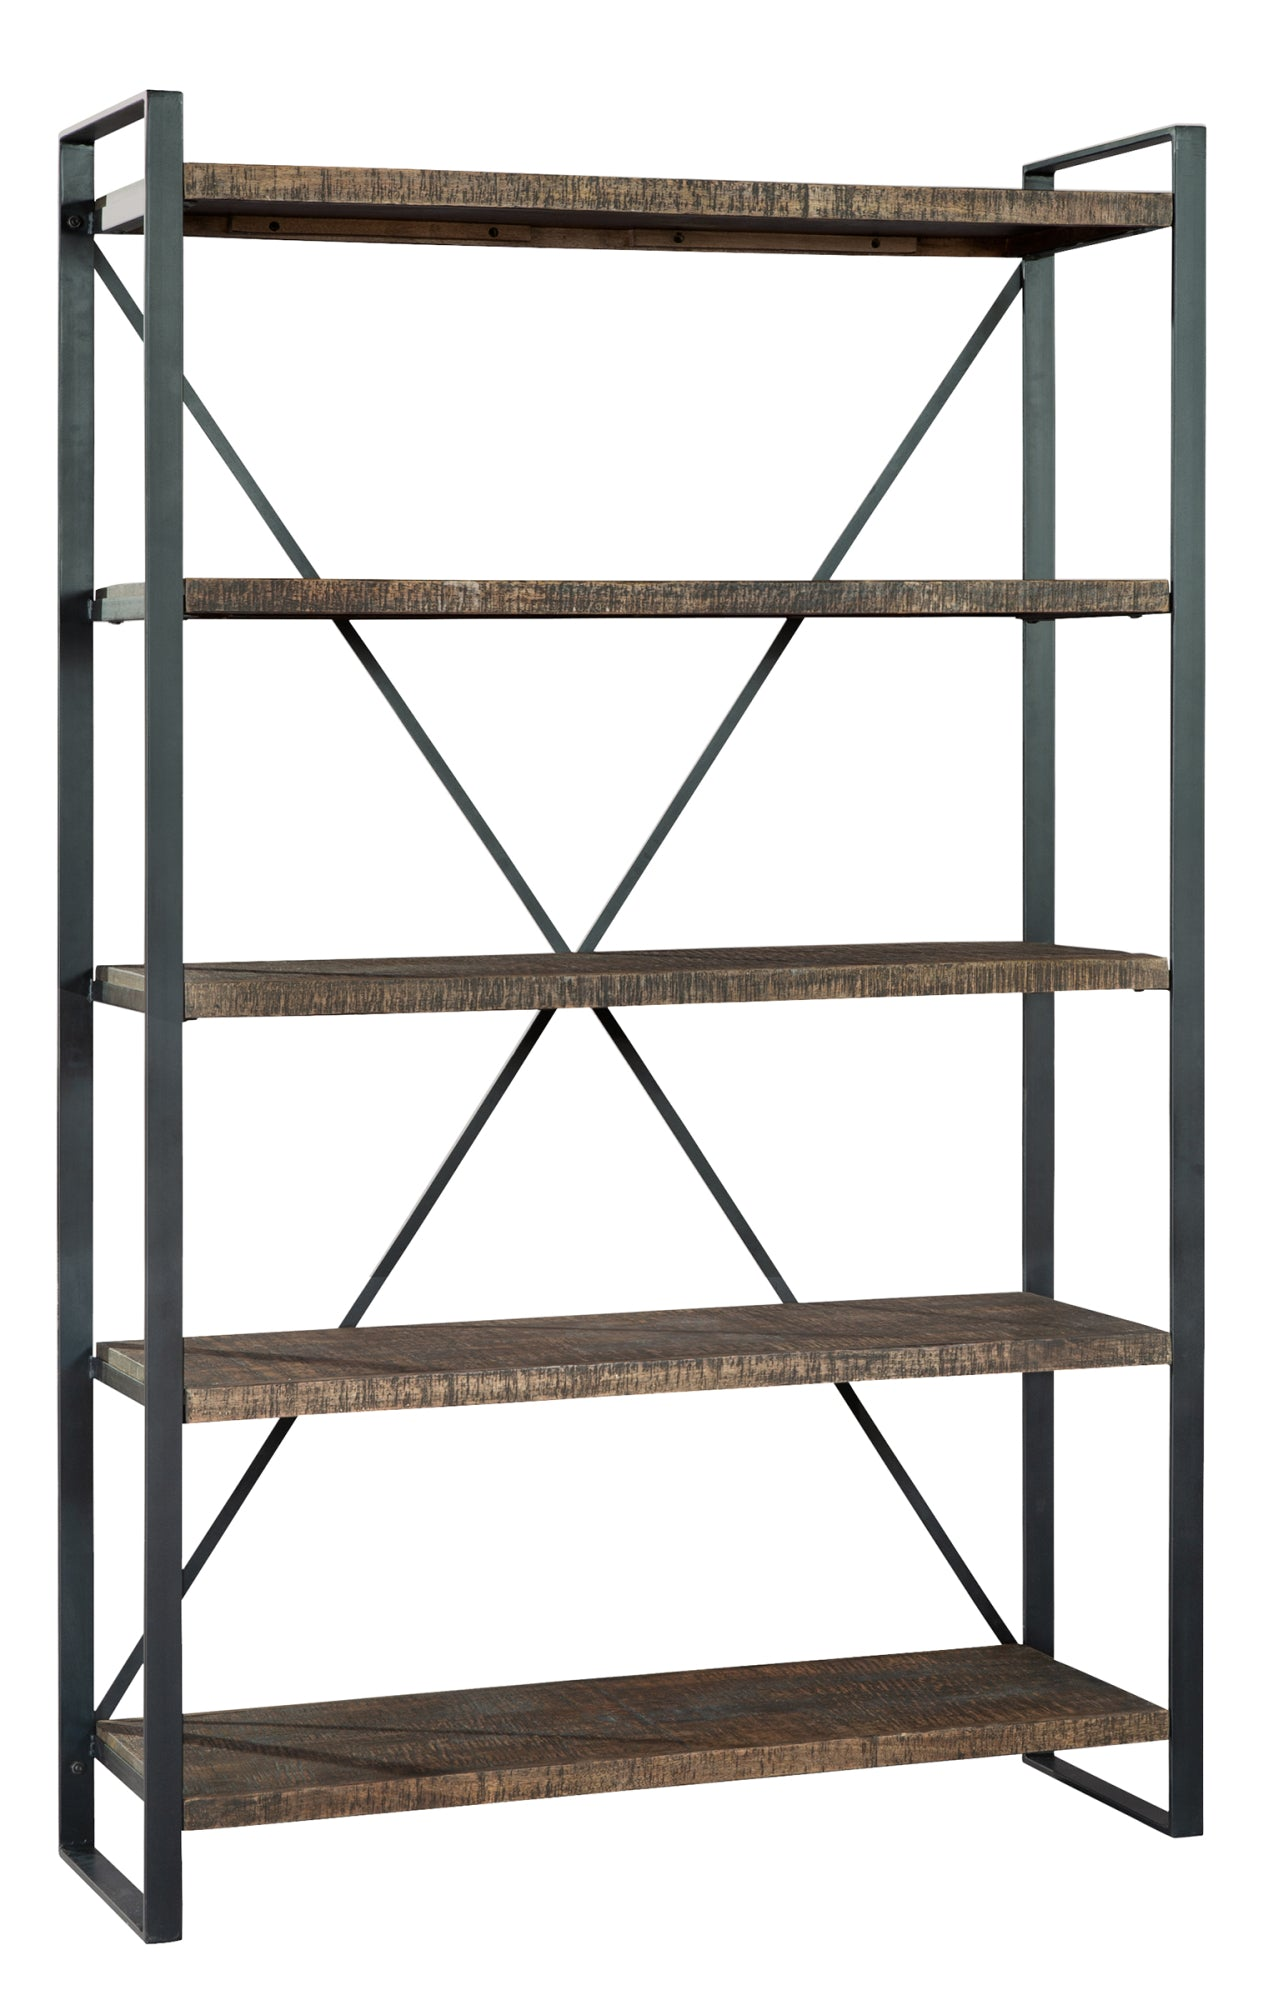 Hekman Office At Home Industrial Bookcase 28055 - Curios And More